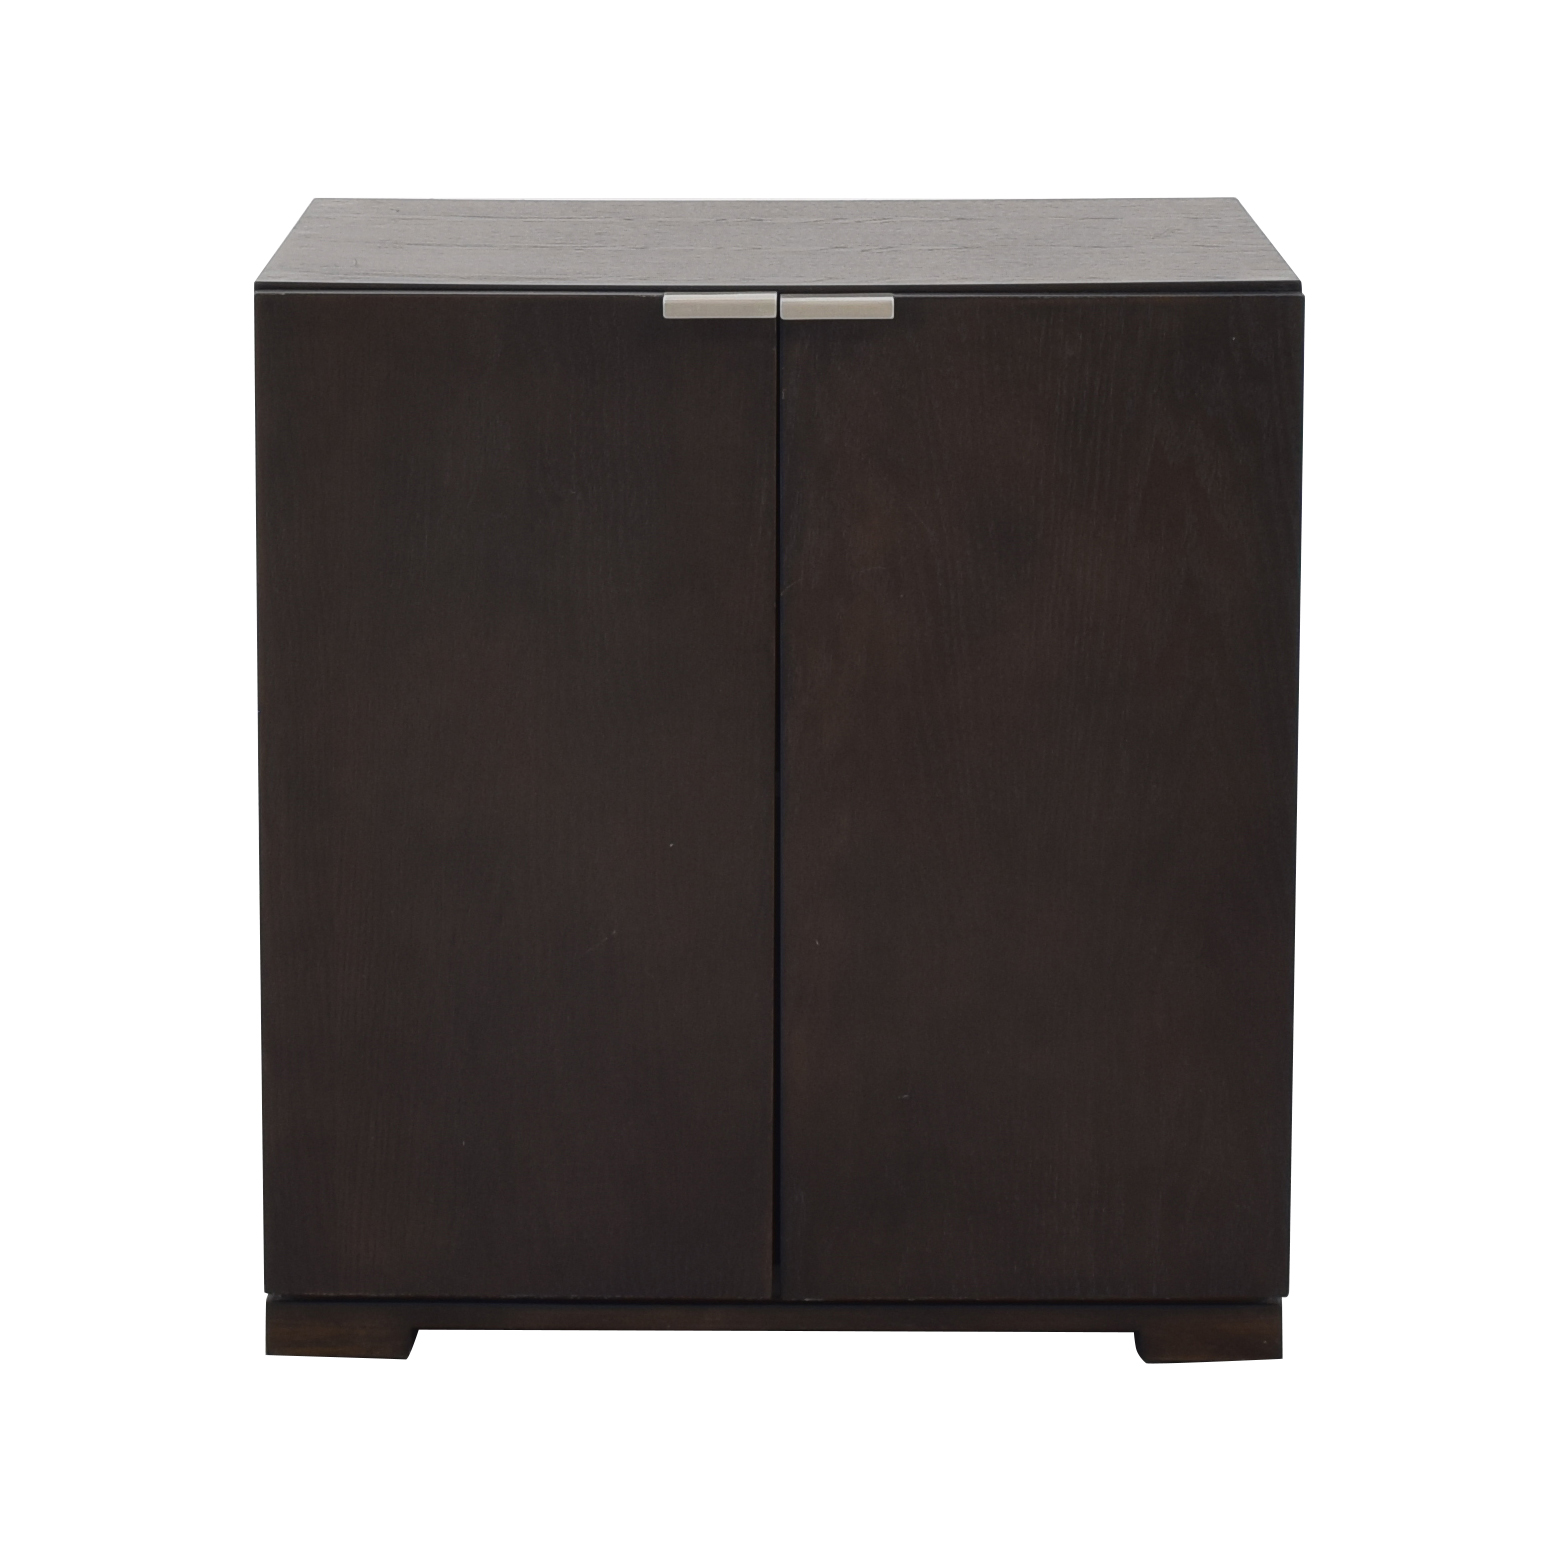 West Elm West Elm Two Door Cabinet price